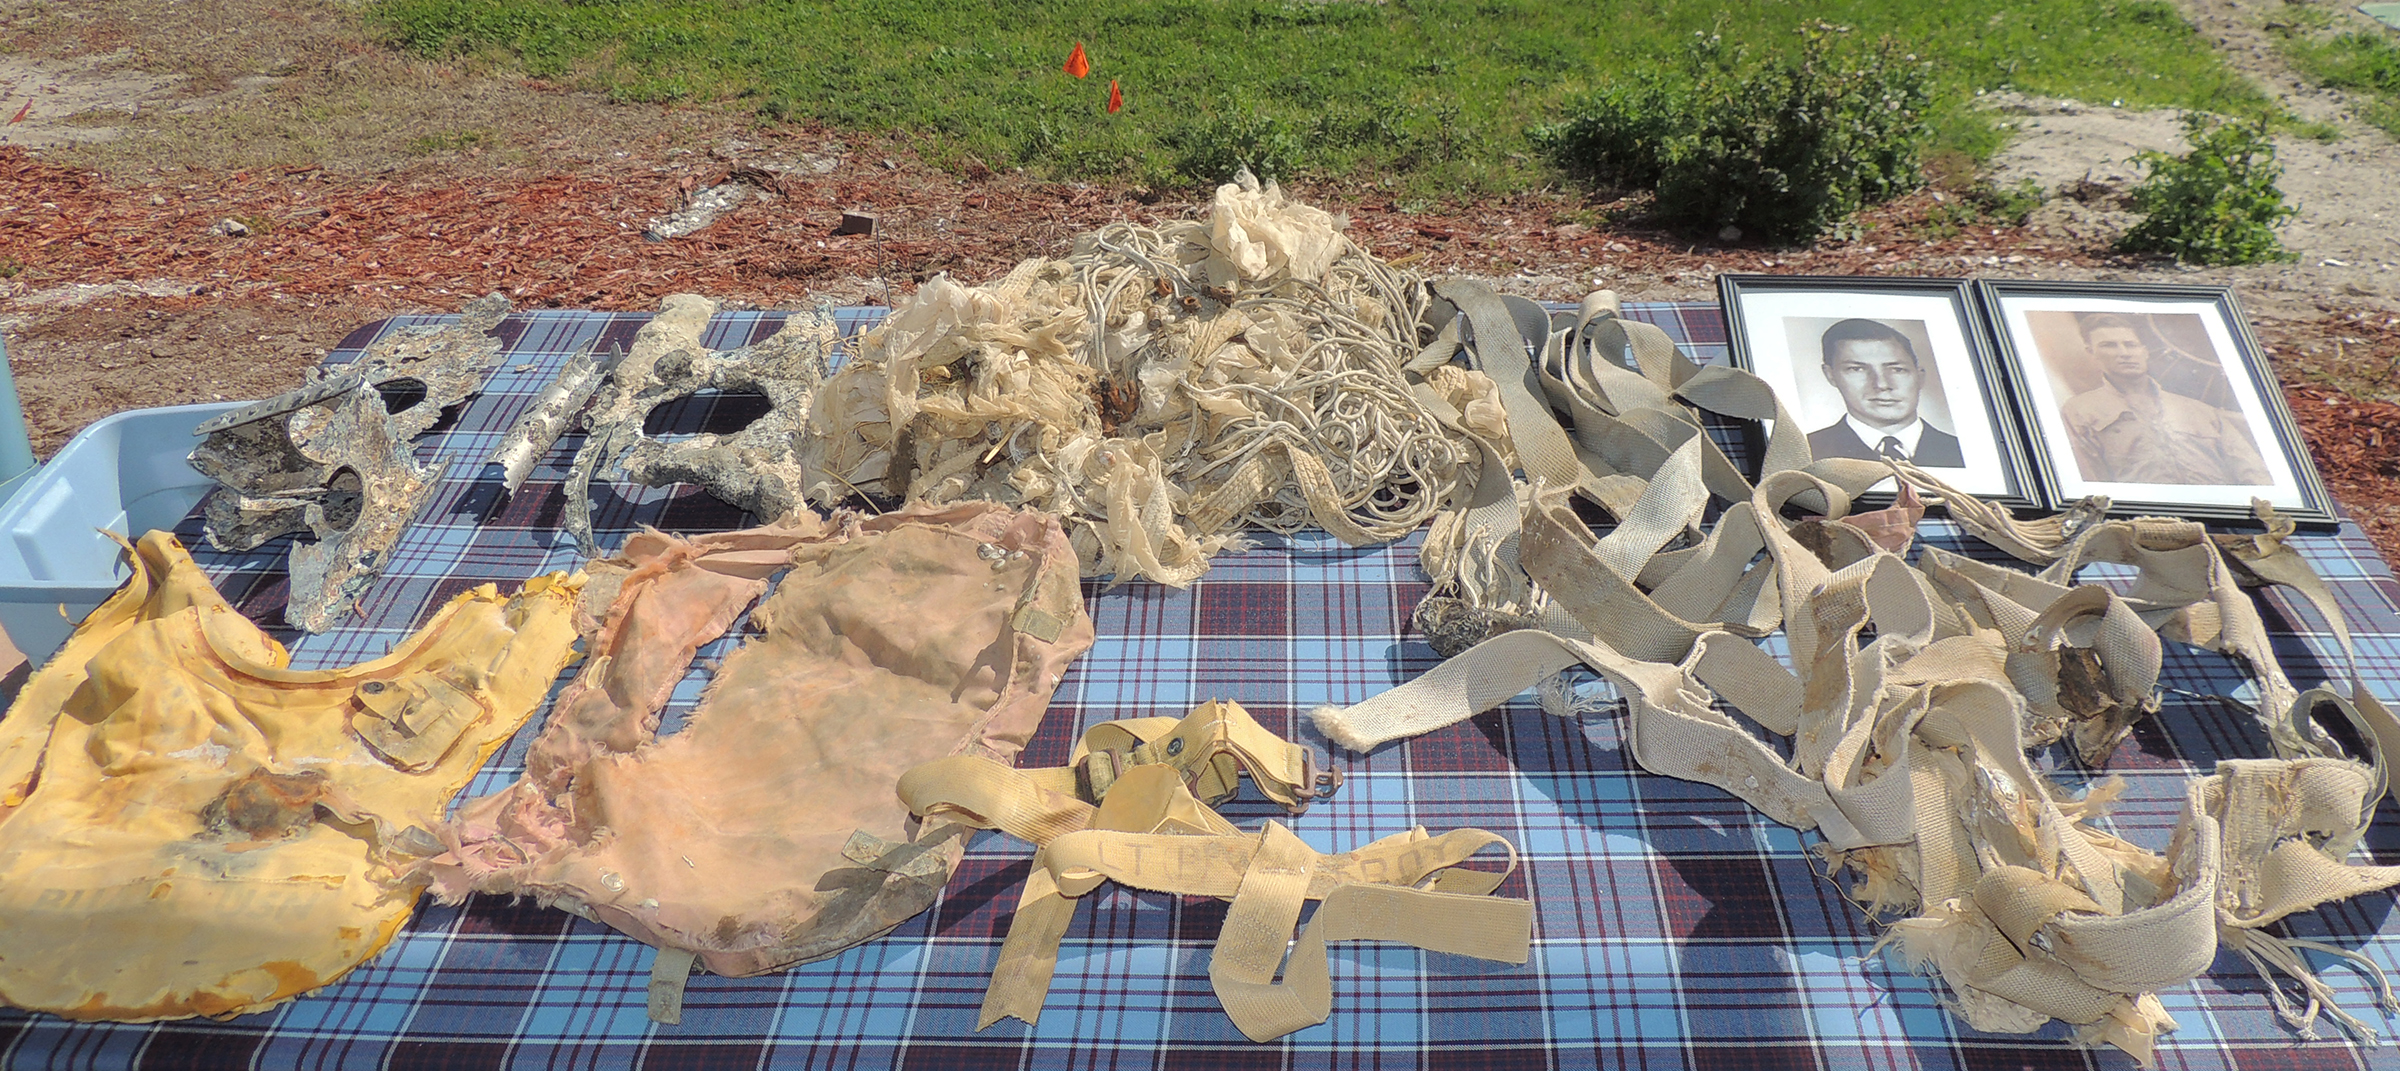 The artifacts recovered from a Jacksonville, Florida, beach last autumn include a parachute, parachute cover and harness, an inflatable life jacket and pieces of the Banshee Lieutenant Barry Troy was flying when he crashed on February 25, 1958. In the centre foreground are straps from the life jacket with Lieutenant Troy's name written on them, which enabled the park ranger who found them and the police officer who took custody of the artifacts to identify to whom they belonged. PHOTO: Joanna Calder, RCAF public affairs